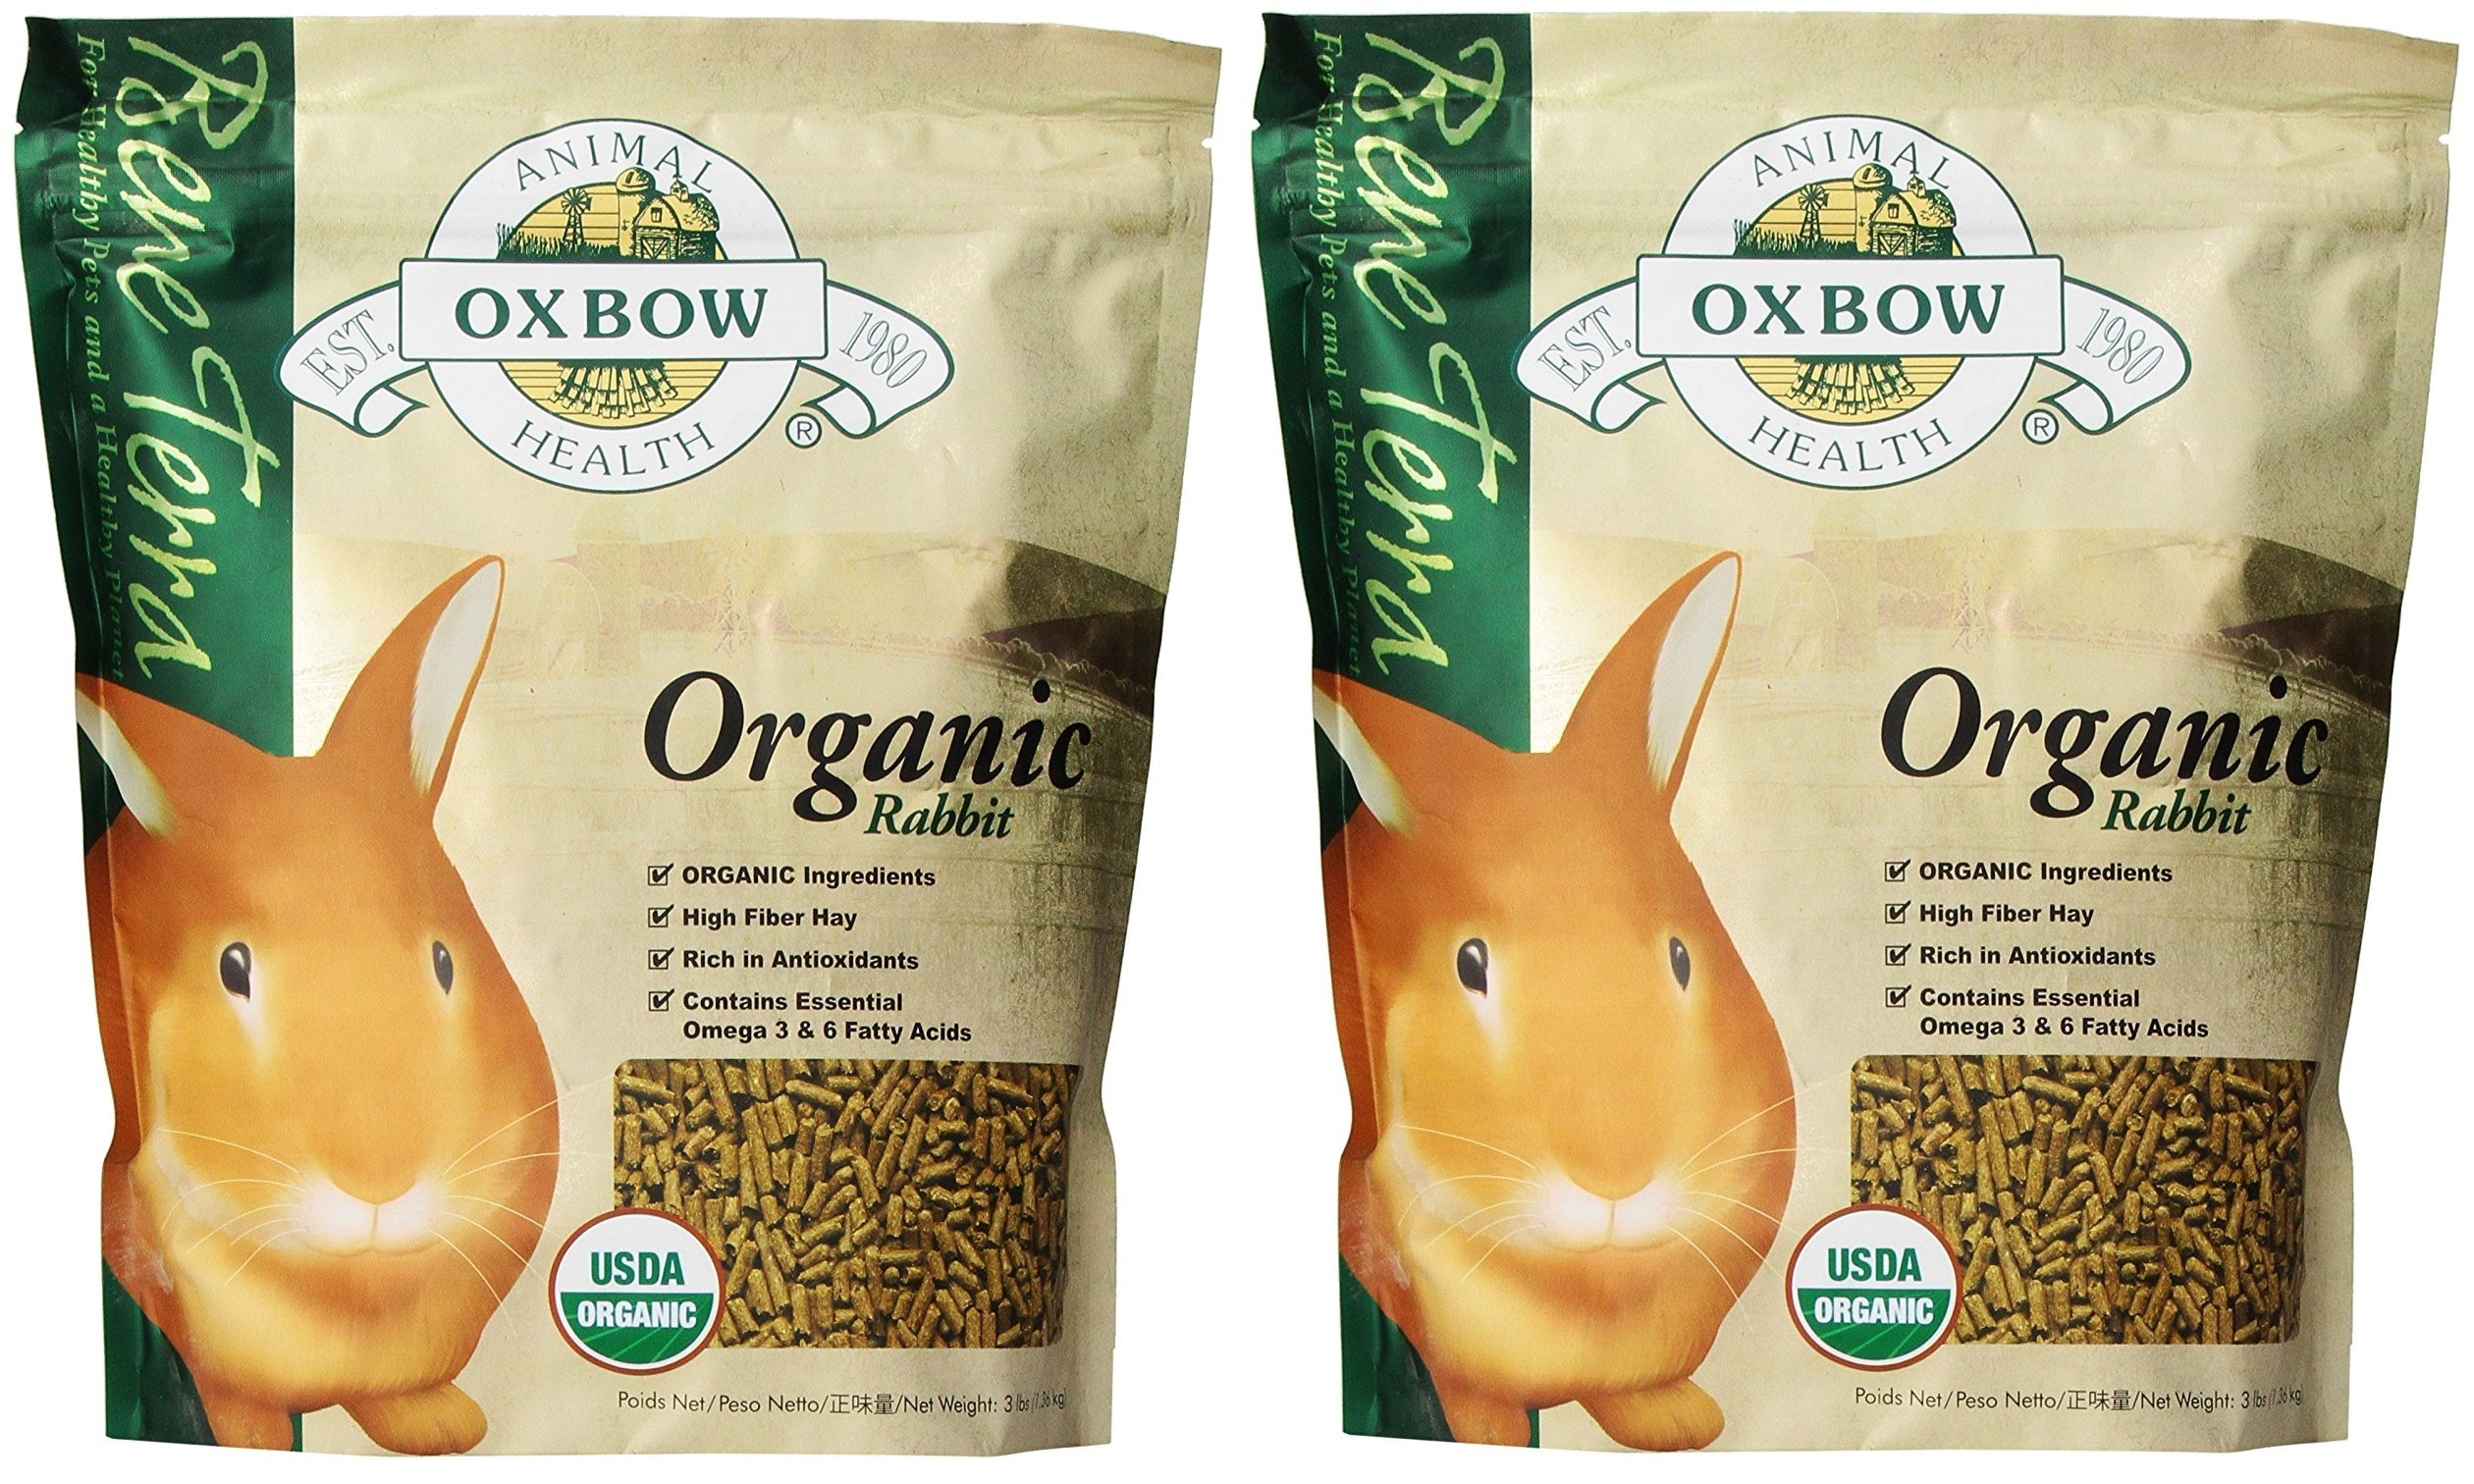 (2 Pack) Oxbow Bene Terra Organic Rabbit Food, 3 lb by Oxbow